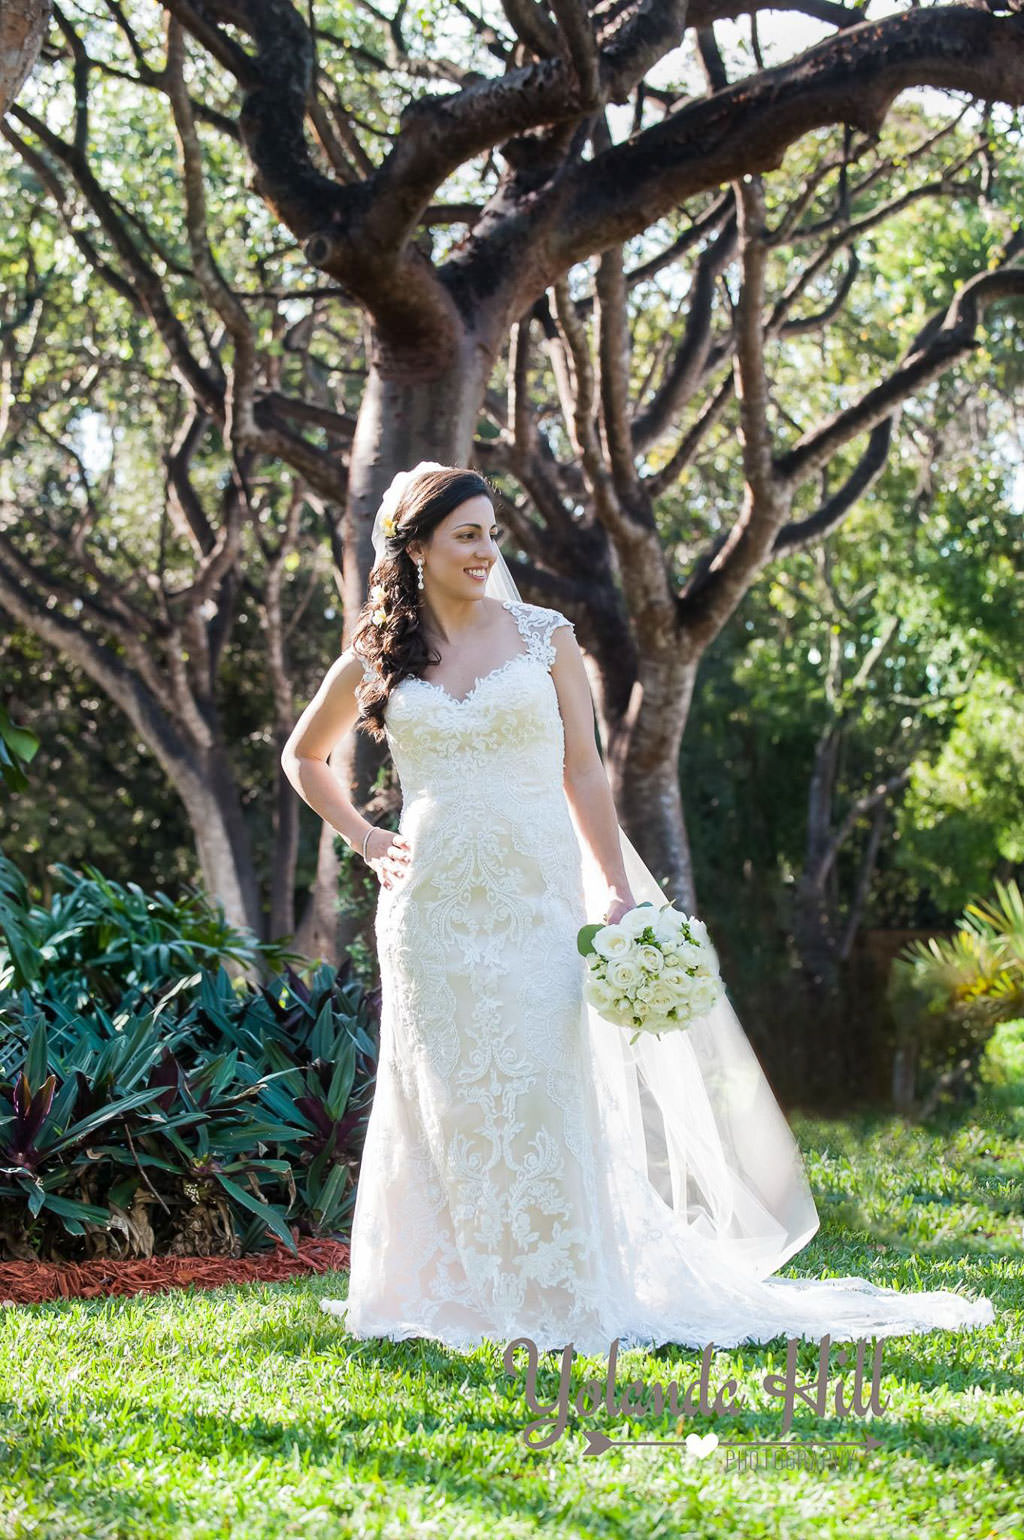 Brides-wedding-dress-172